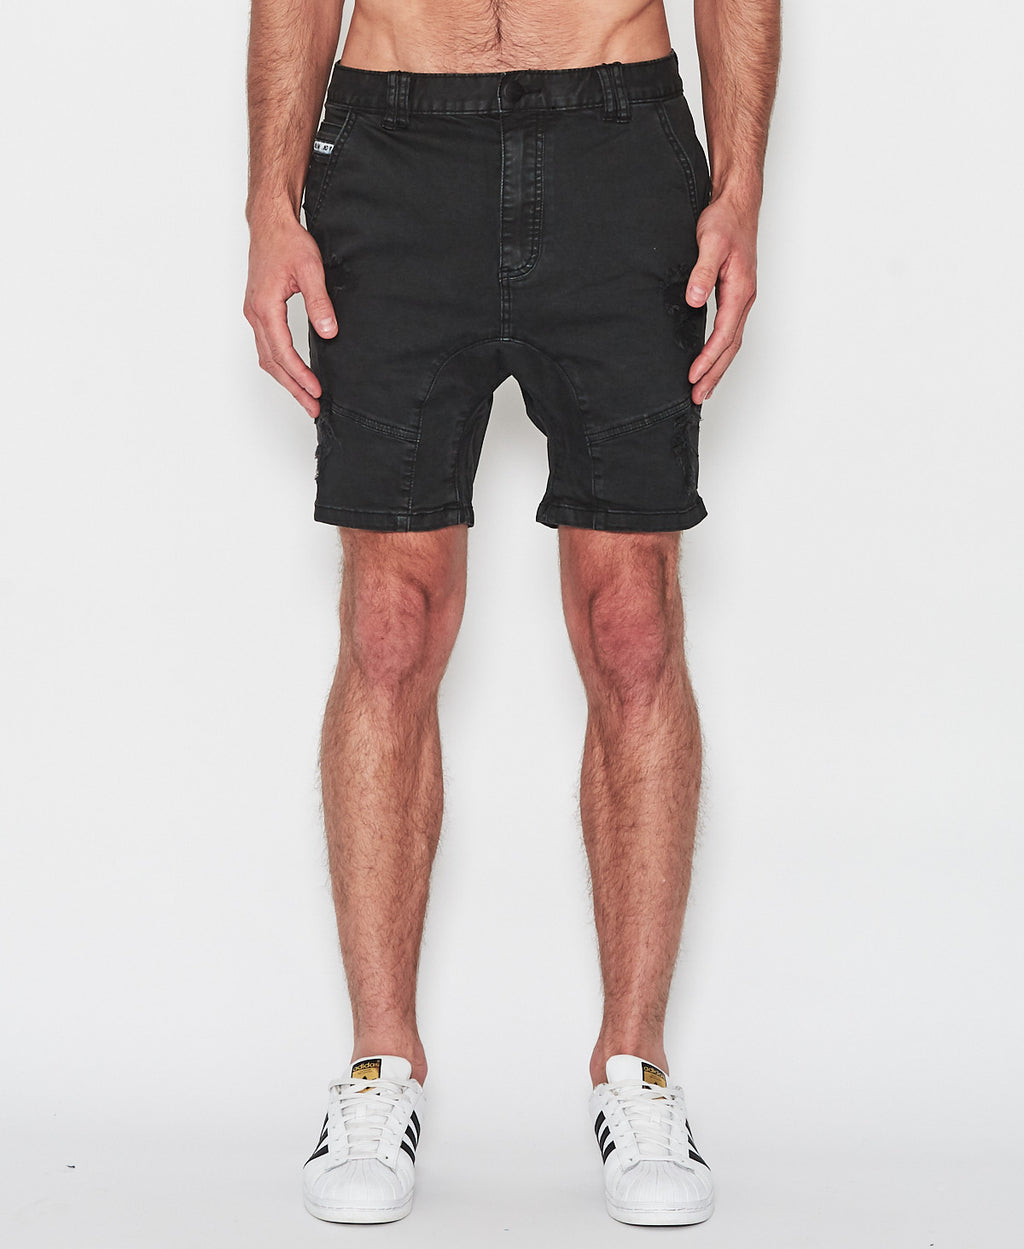 Nena And Pasadena - Flight Shorts - Washed Black